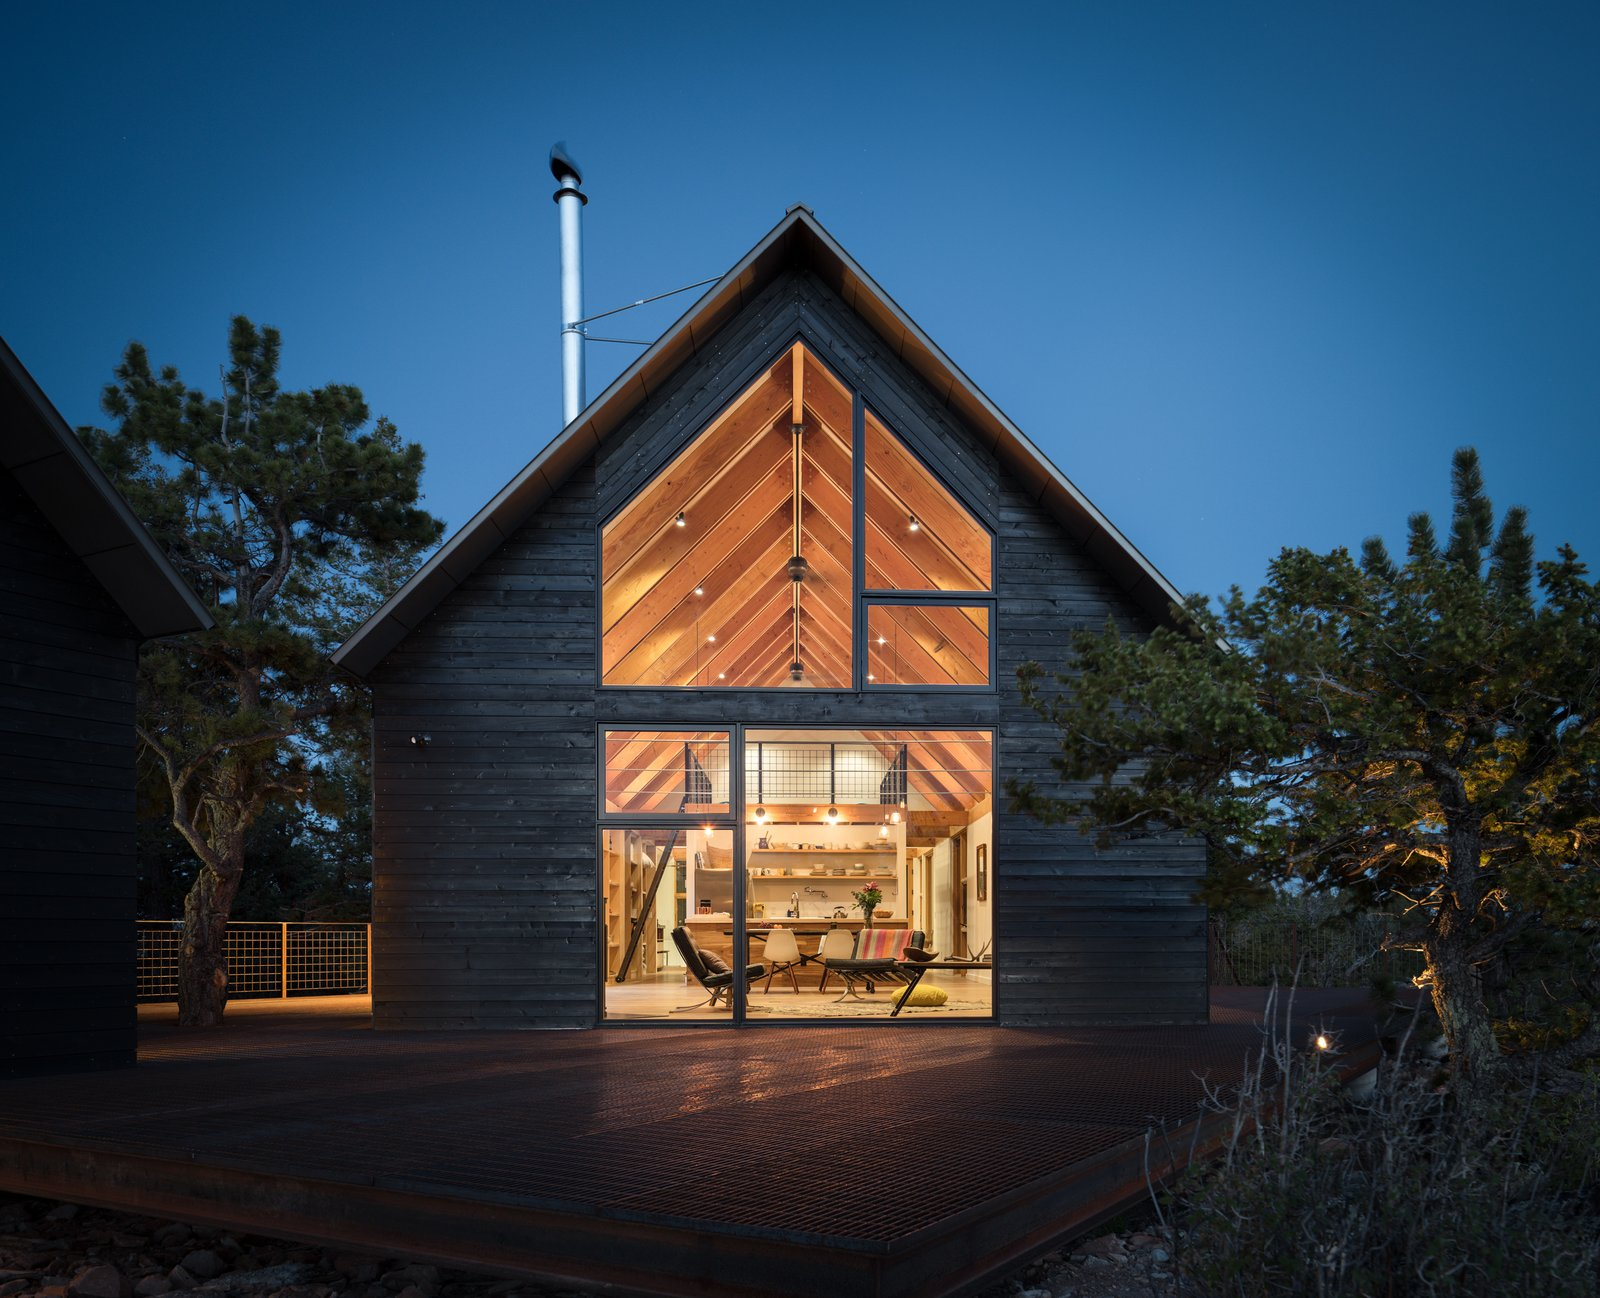 Outdoor, Trees, Back Yard, Metal Patio, Porch, Deck, and Large Patio, Porch, Deck  Big Cabin | Little Cabin by Renée del Gaudio Architecture